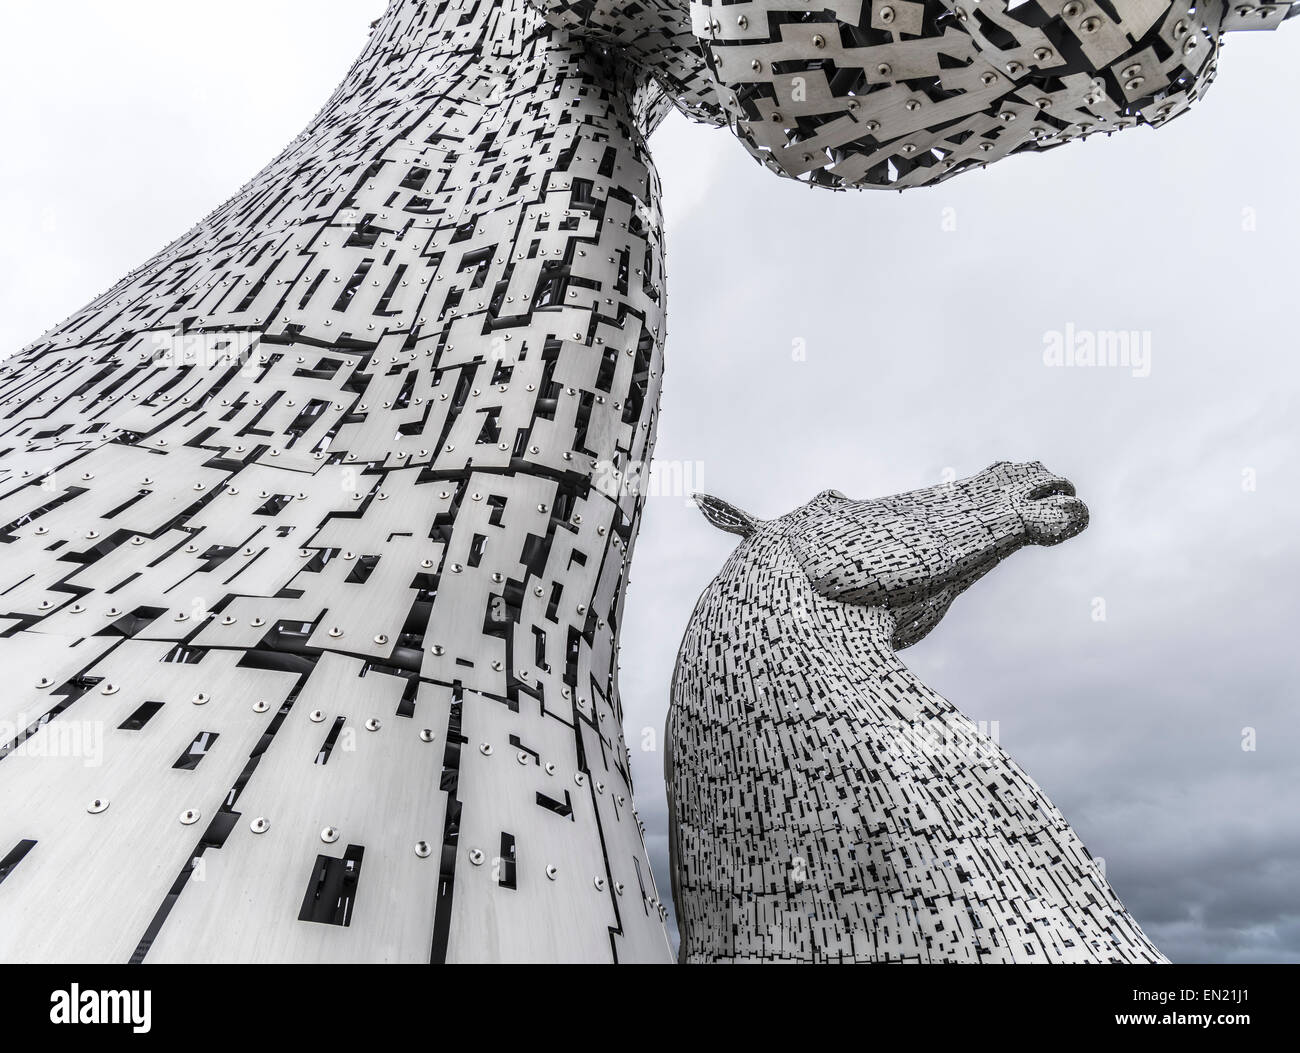 The Kelpies, 30-meter high horse sculptures by Andy Scott. Falkirk, Scotland - Stock Image